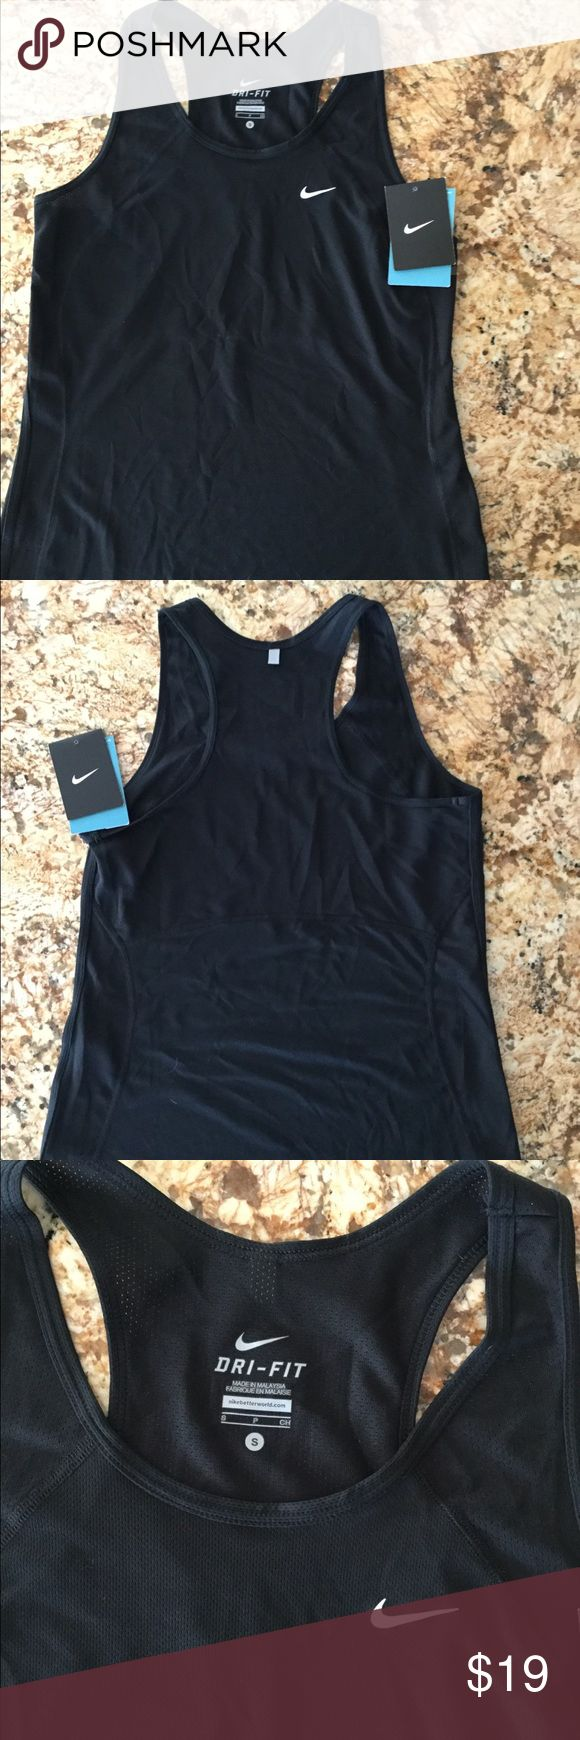 Nike womens dry fit tank New with tag black size small perfect condition Nike Tops Tank Tops #womantanktop